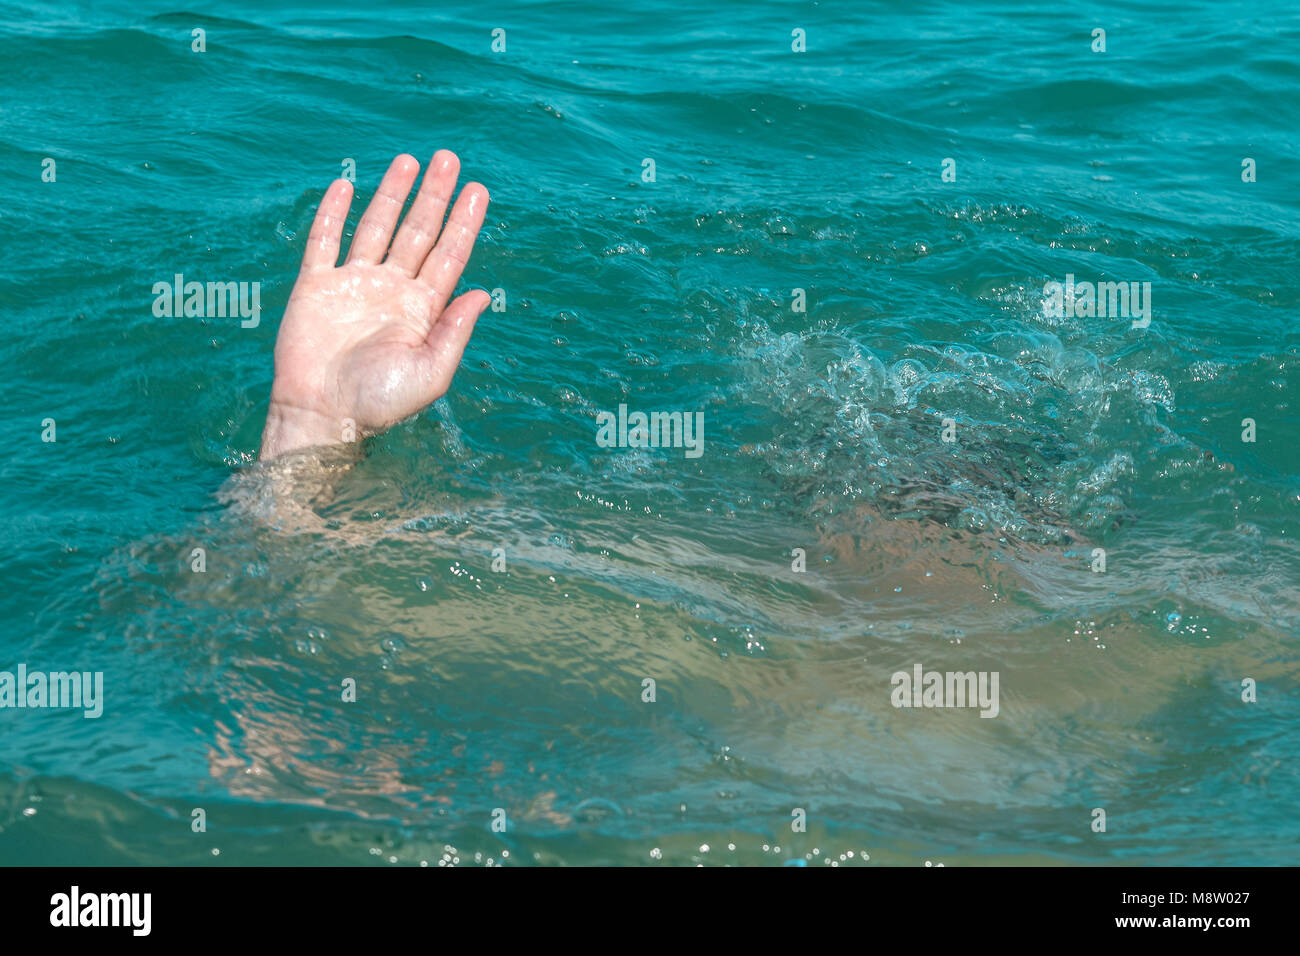 A sinking person the salvation of a drowning man stock image